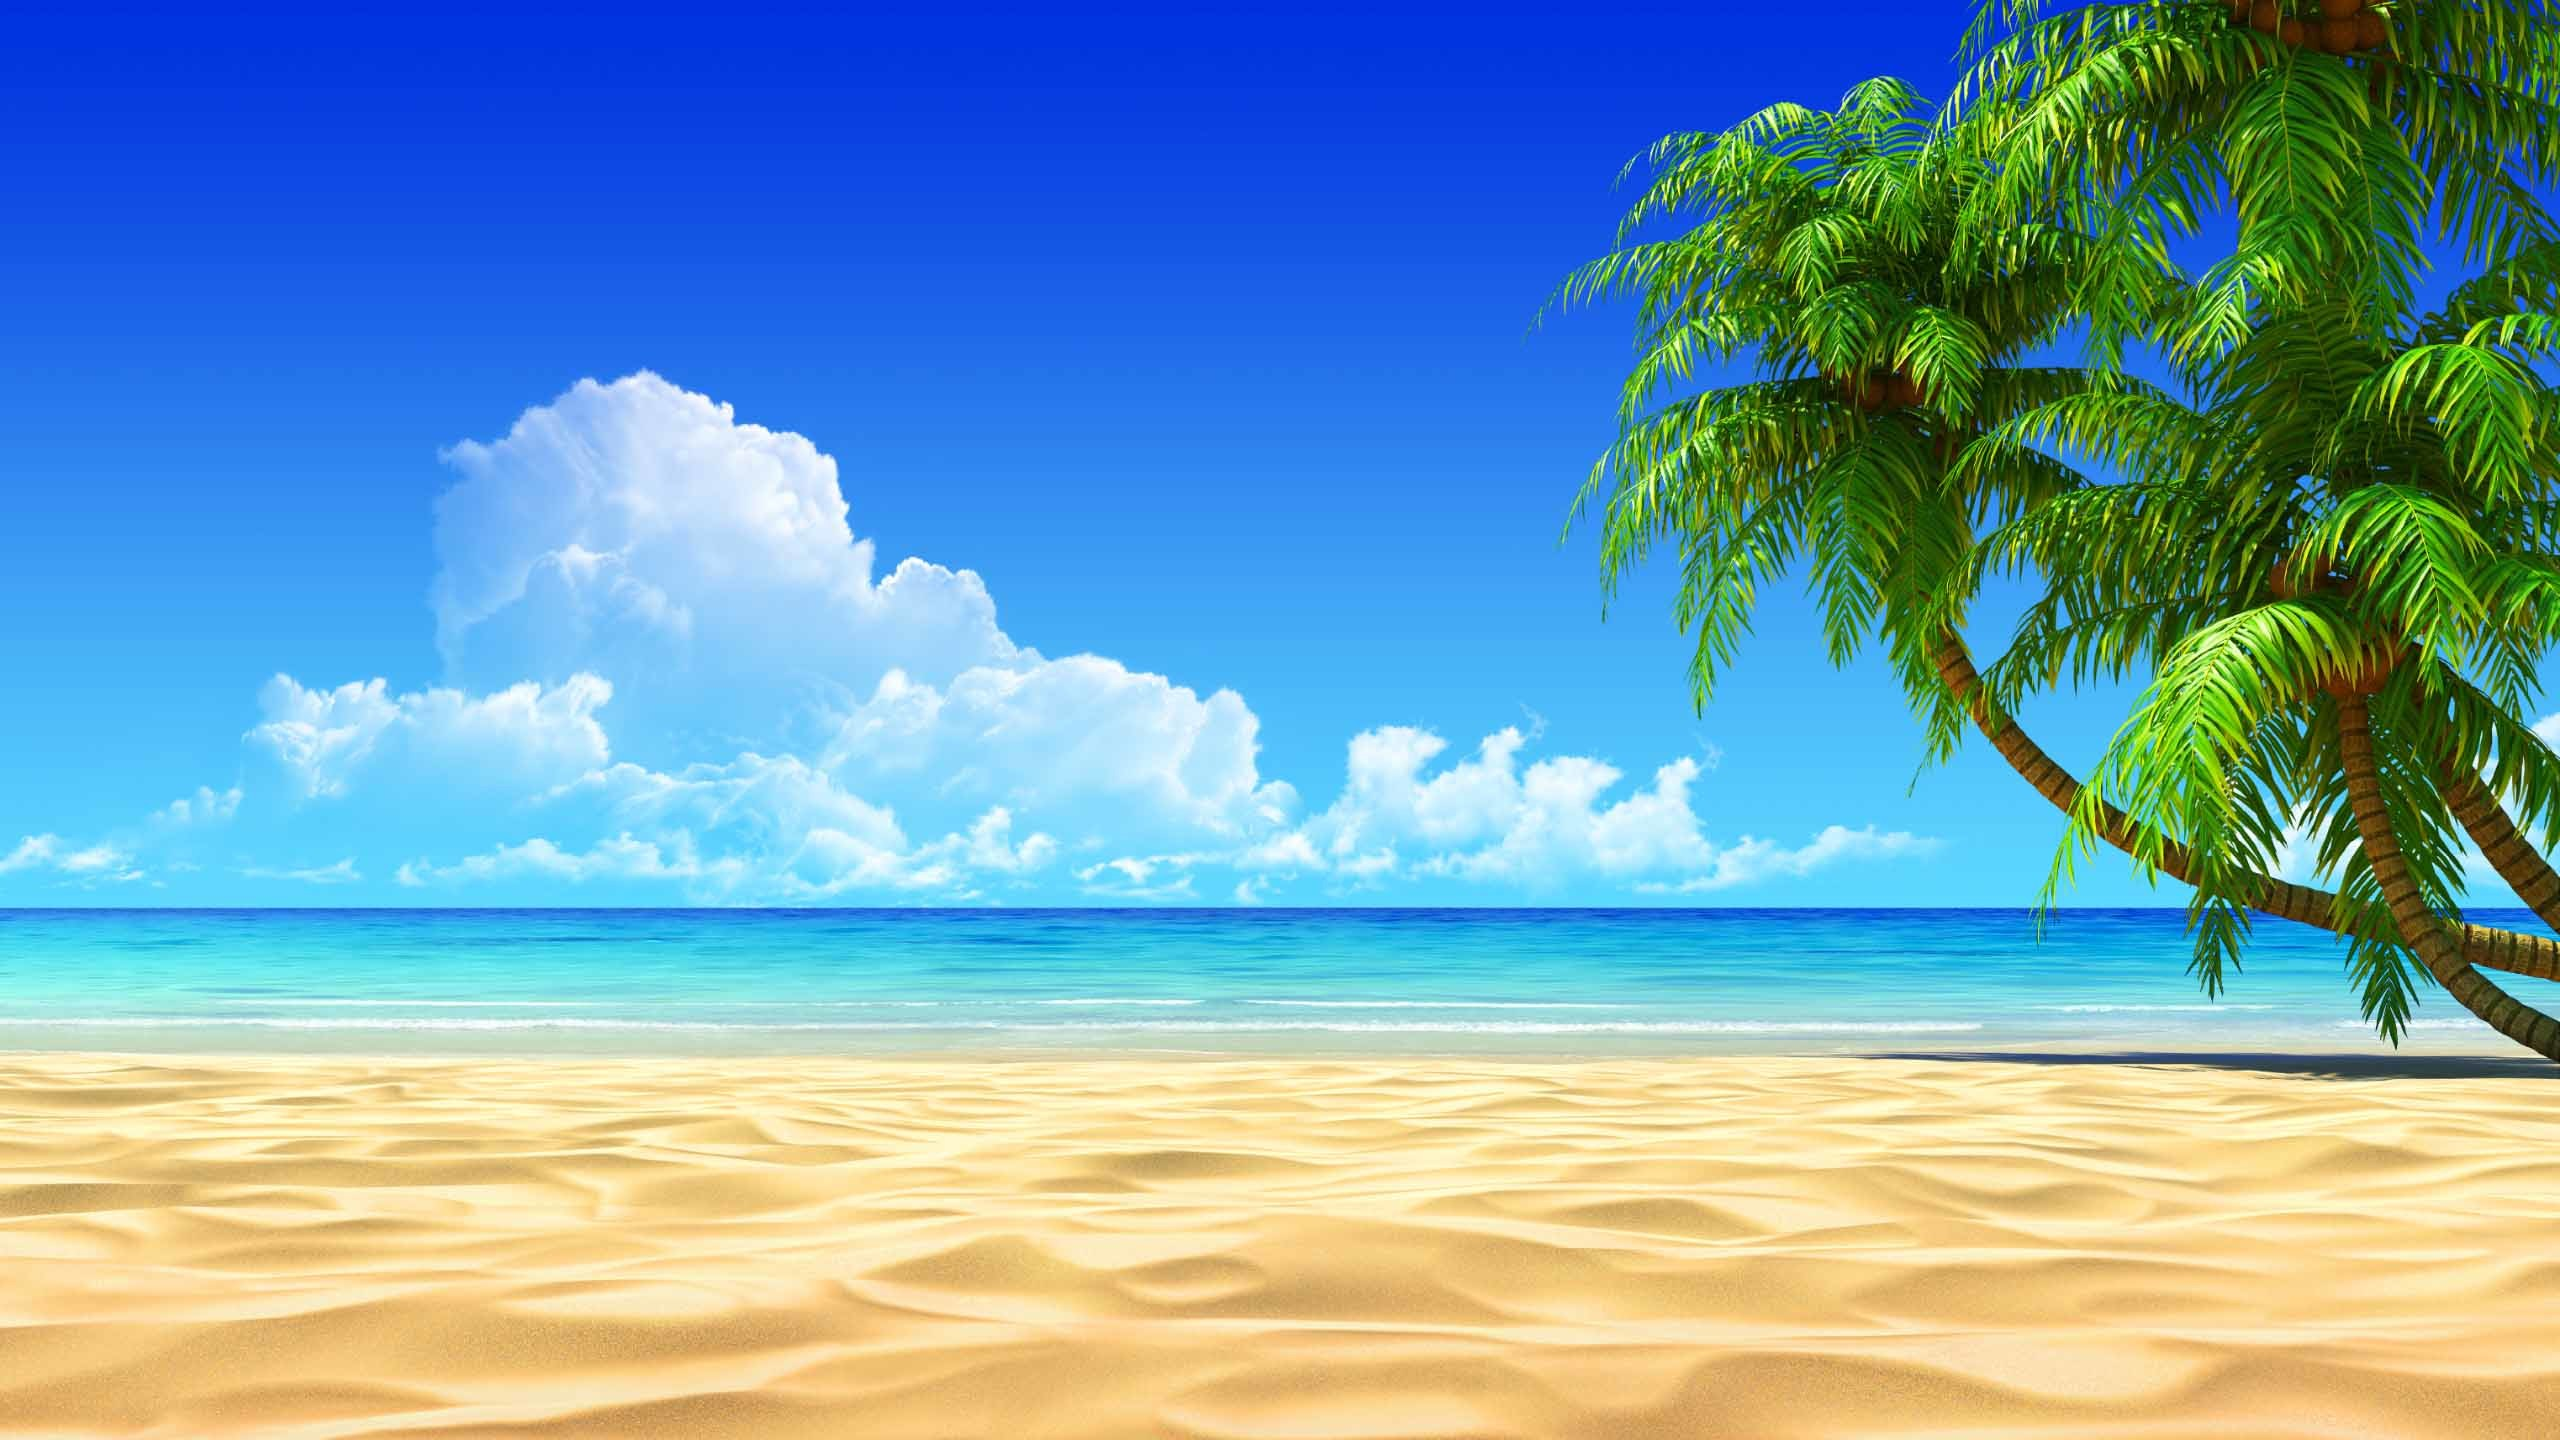 Sandy Sunny Beach Picture